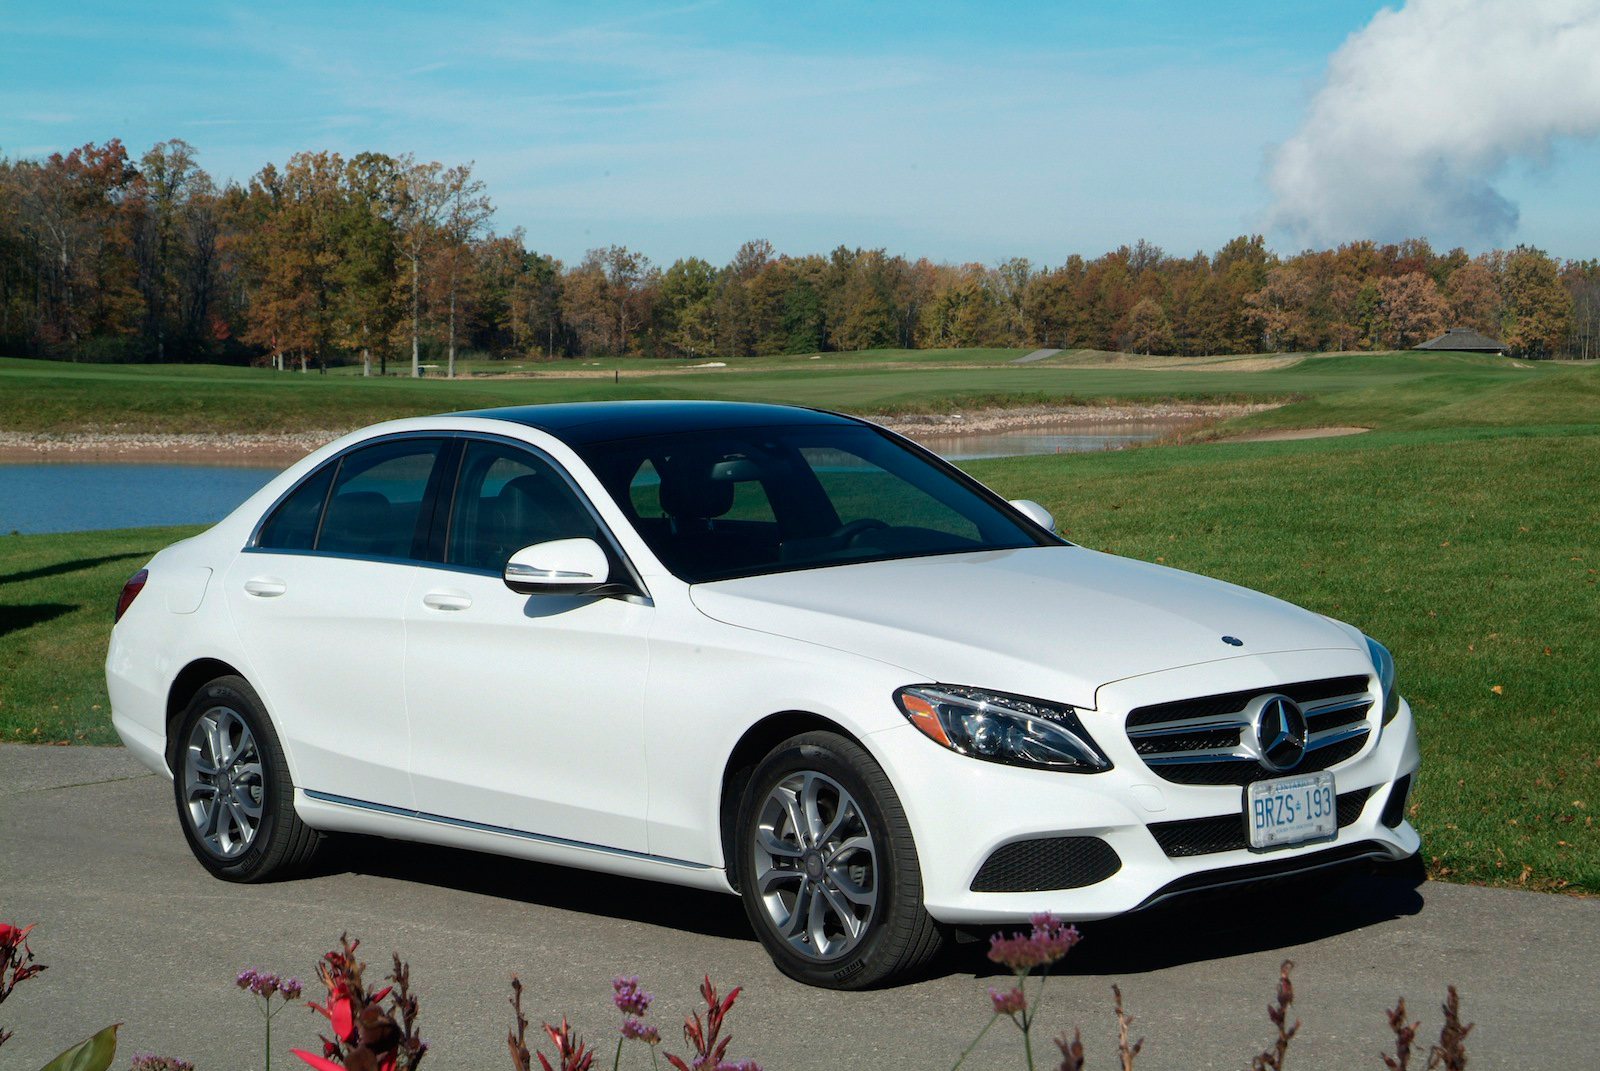 2015 mercedes benz c300 4matic driven car review the for Mercedes benz reliability ratings